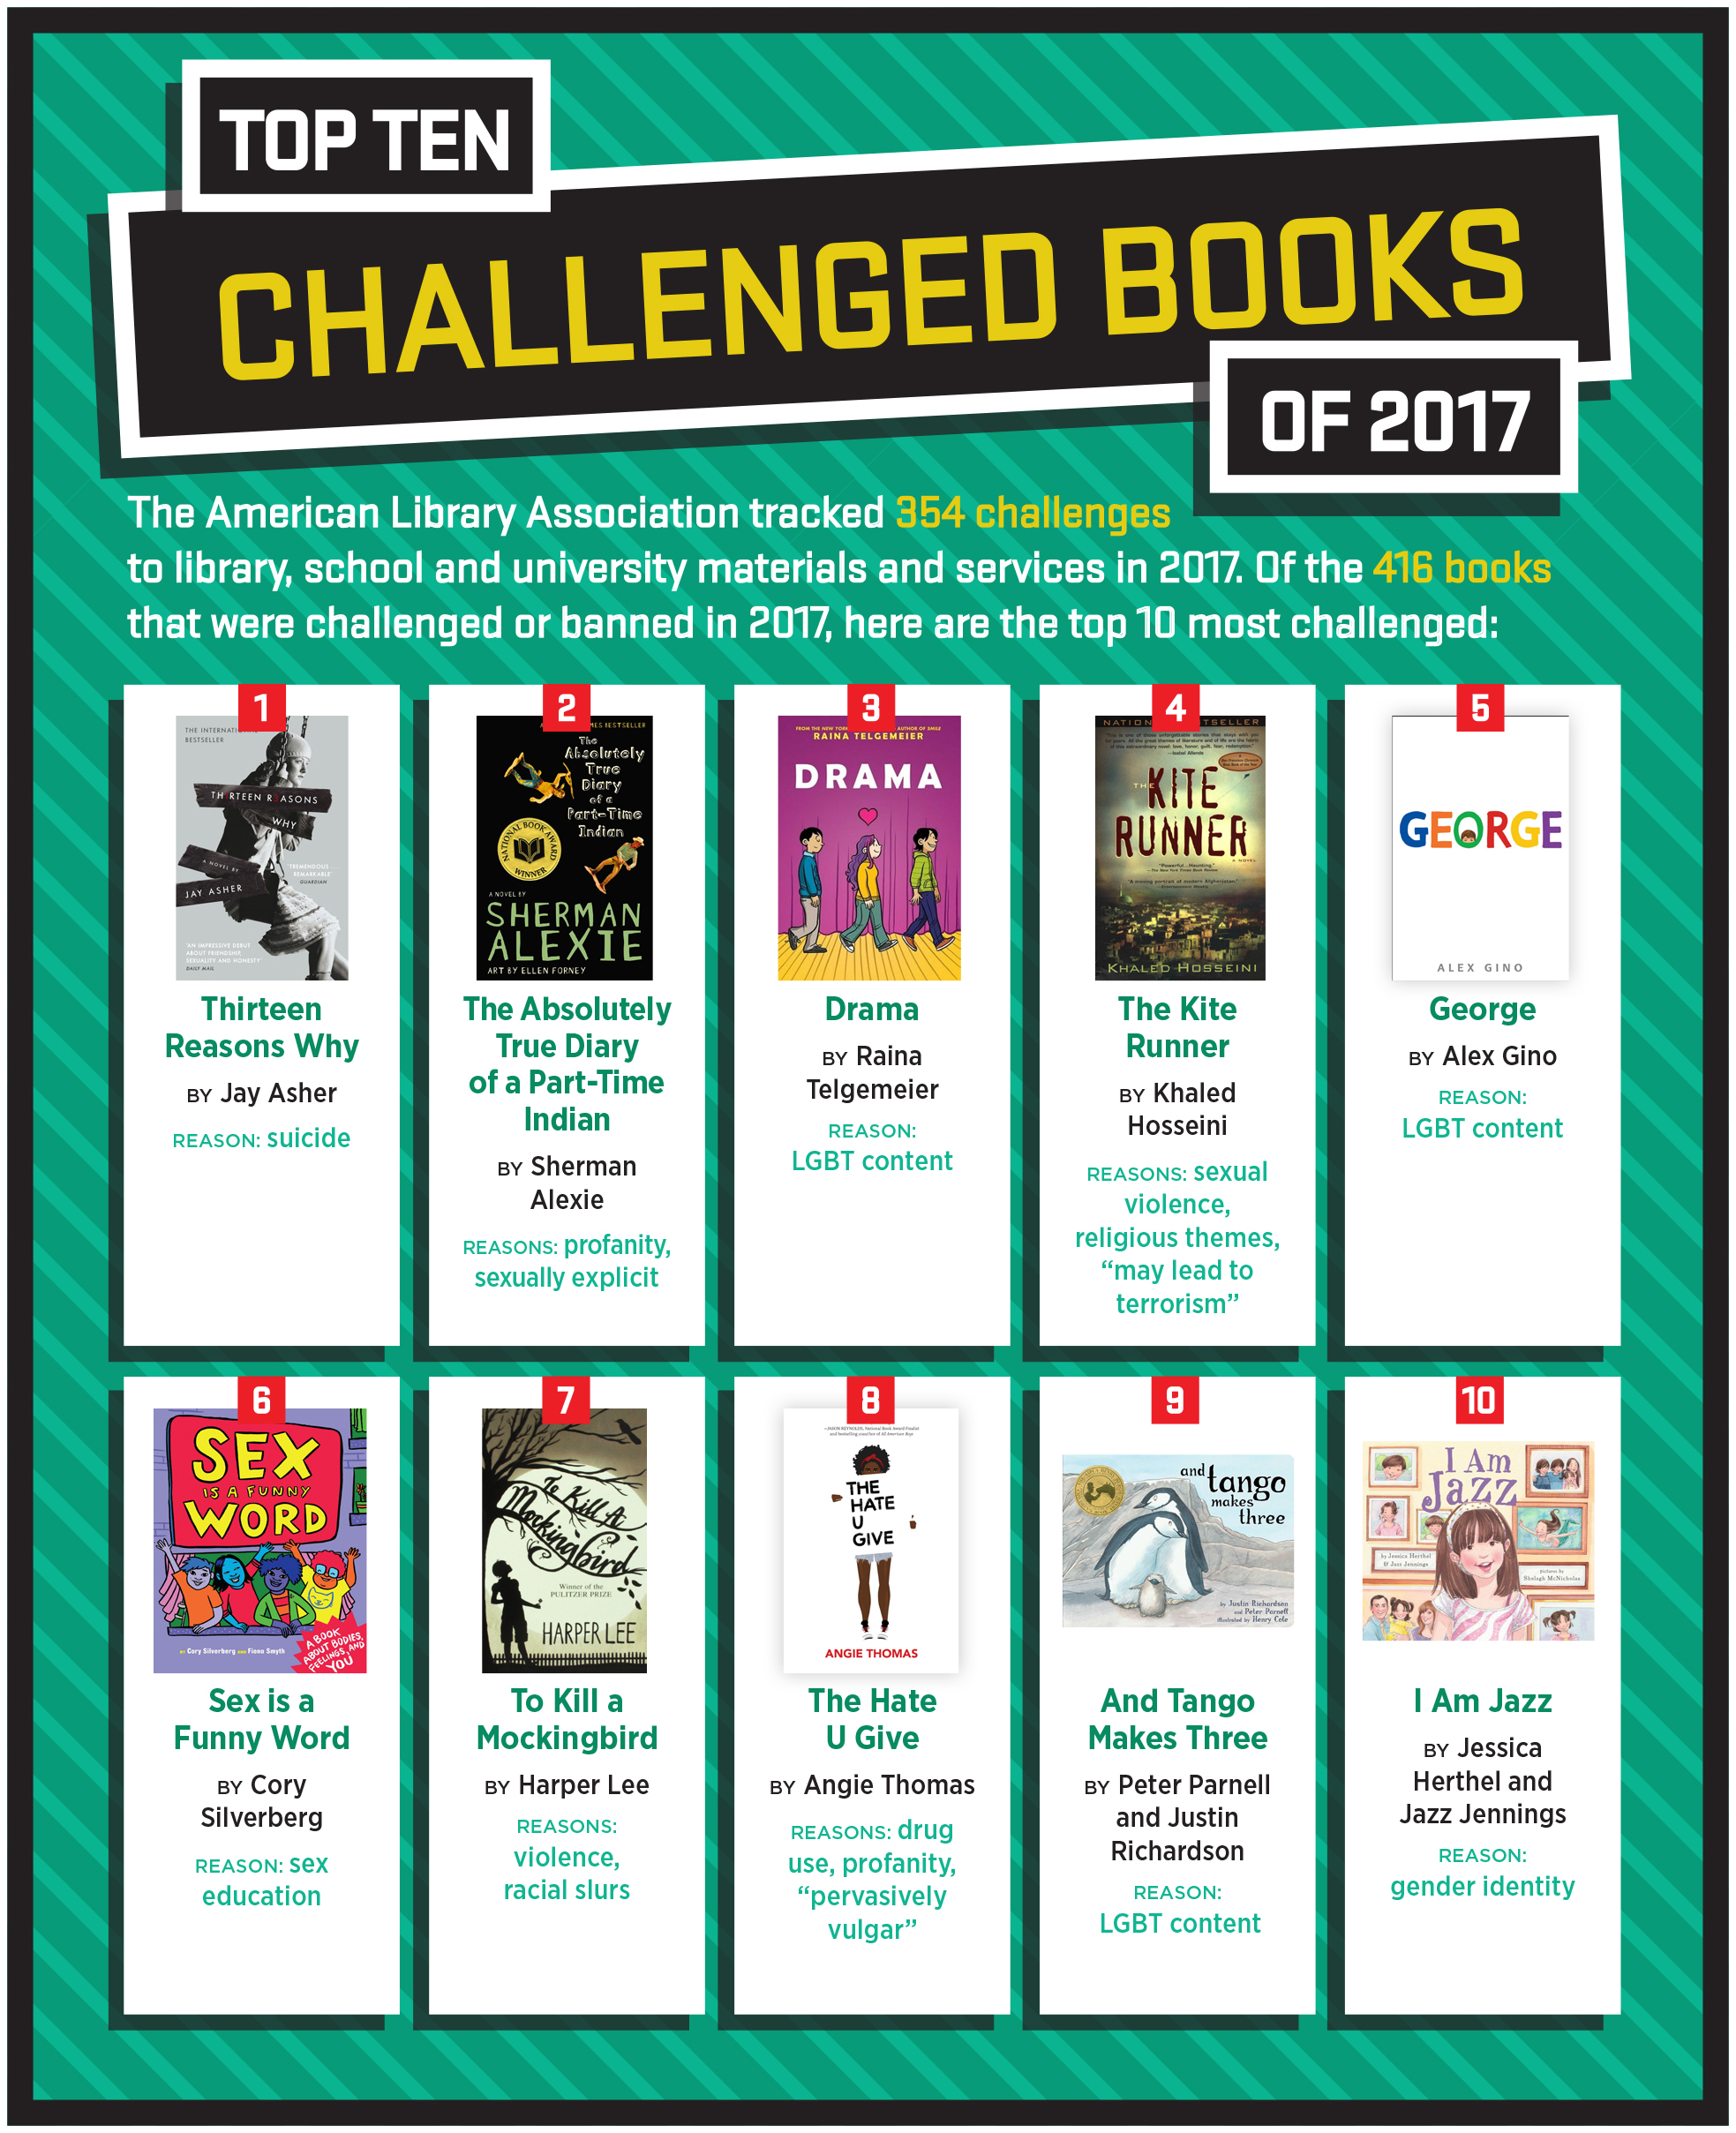 ALA Office for Intellectual Freedom Names Ten Most Challenged Books of 2017